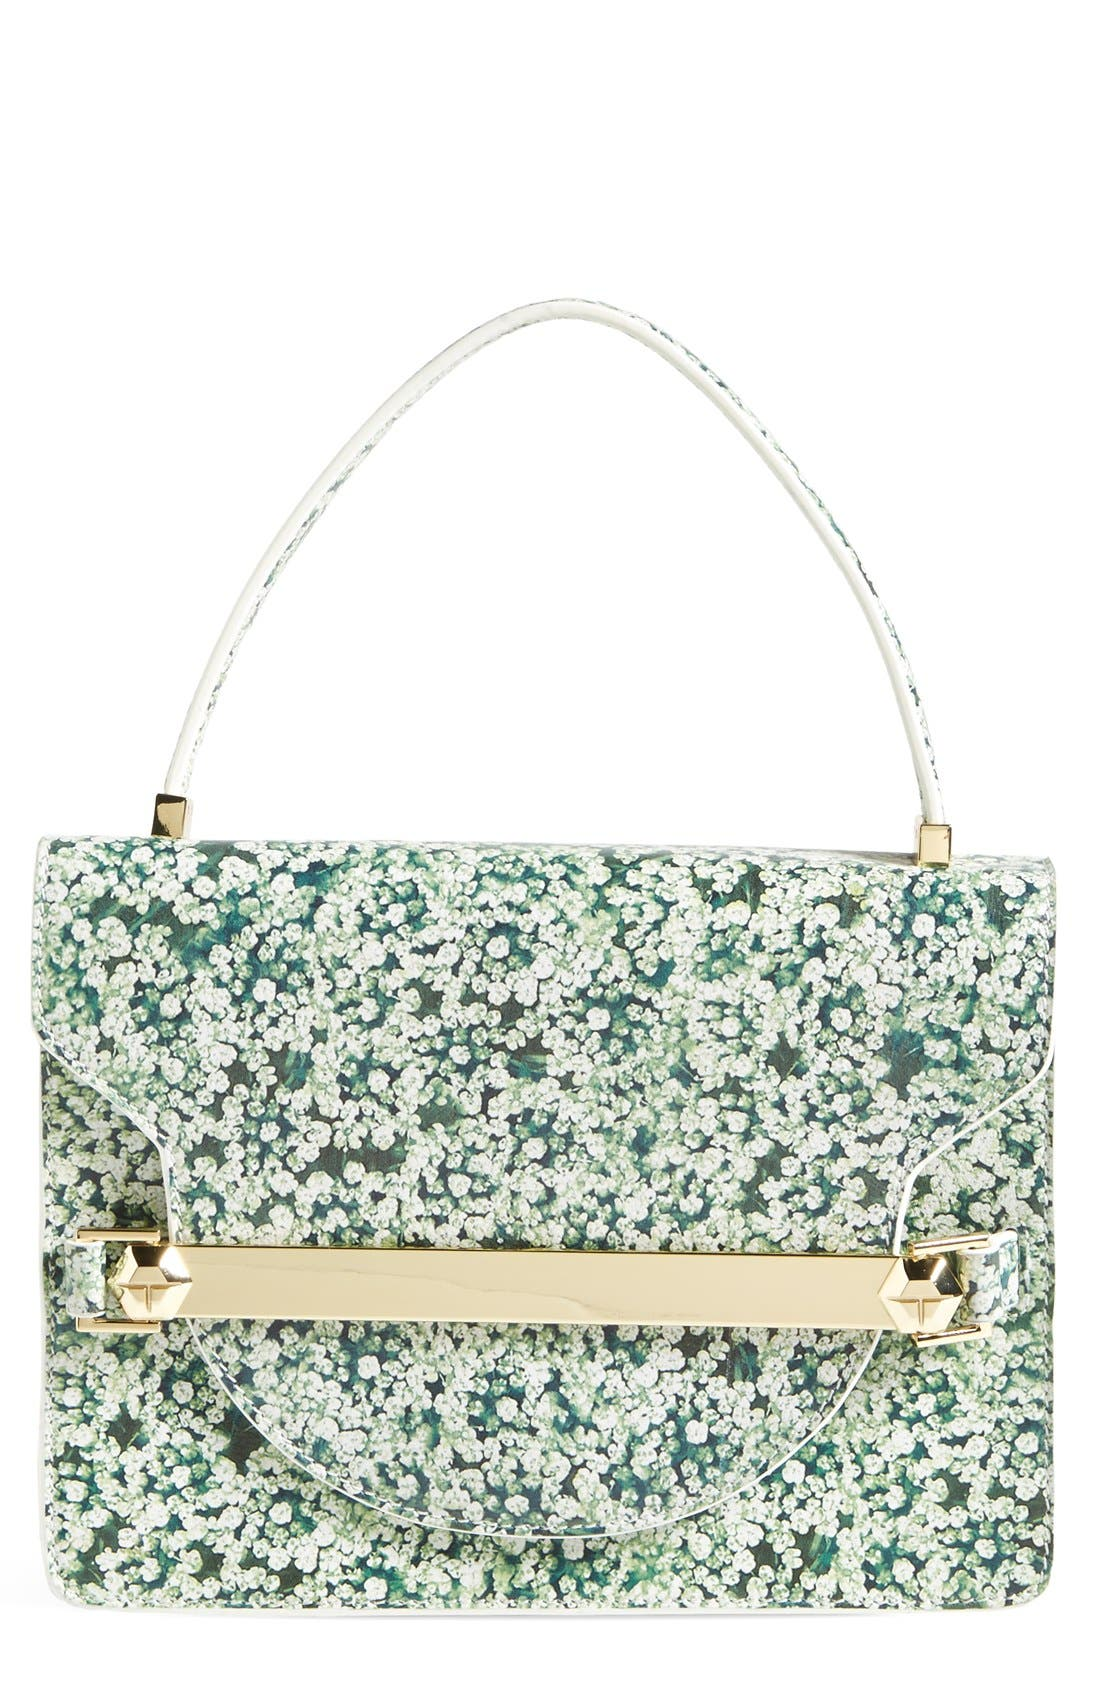 Alternate Image 1 Selected - Tory Burch 'Marquis' Shoulder Bag